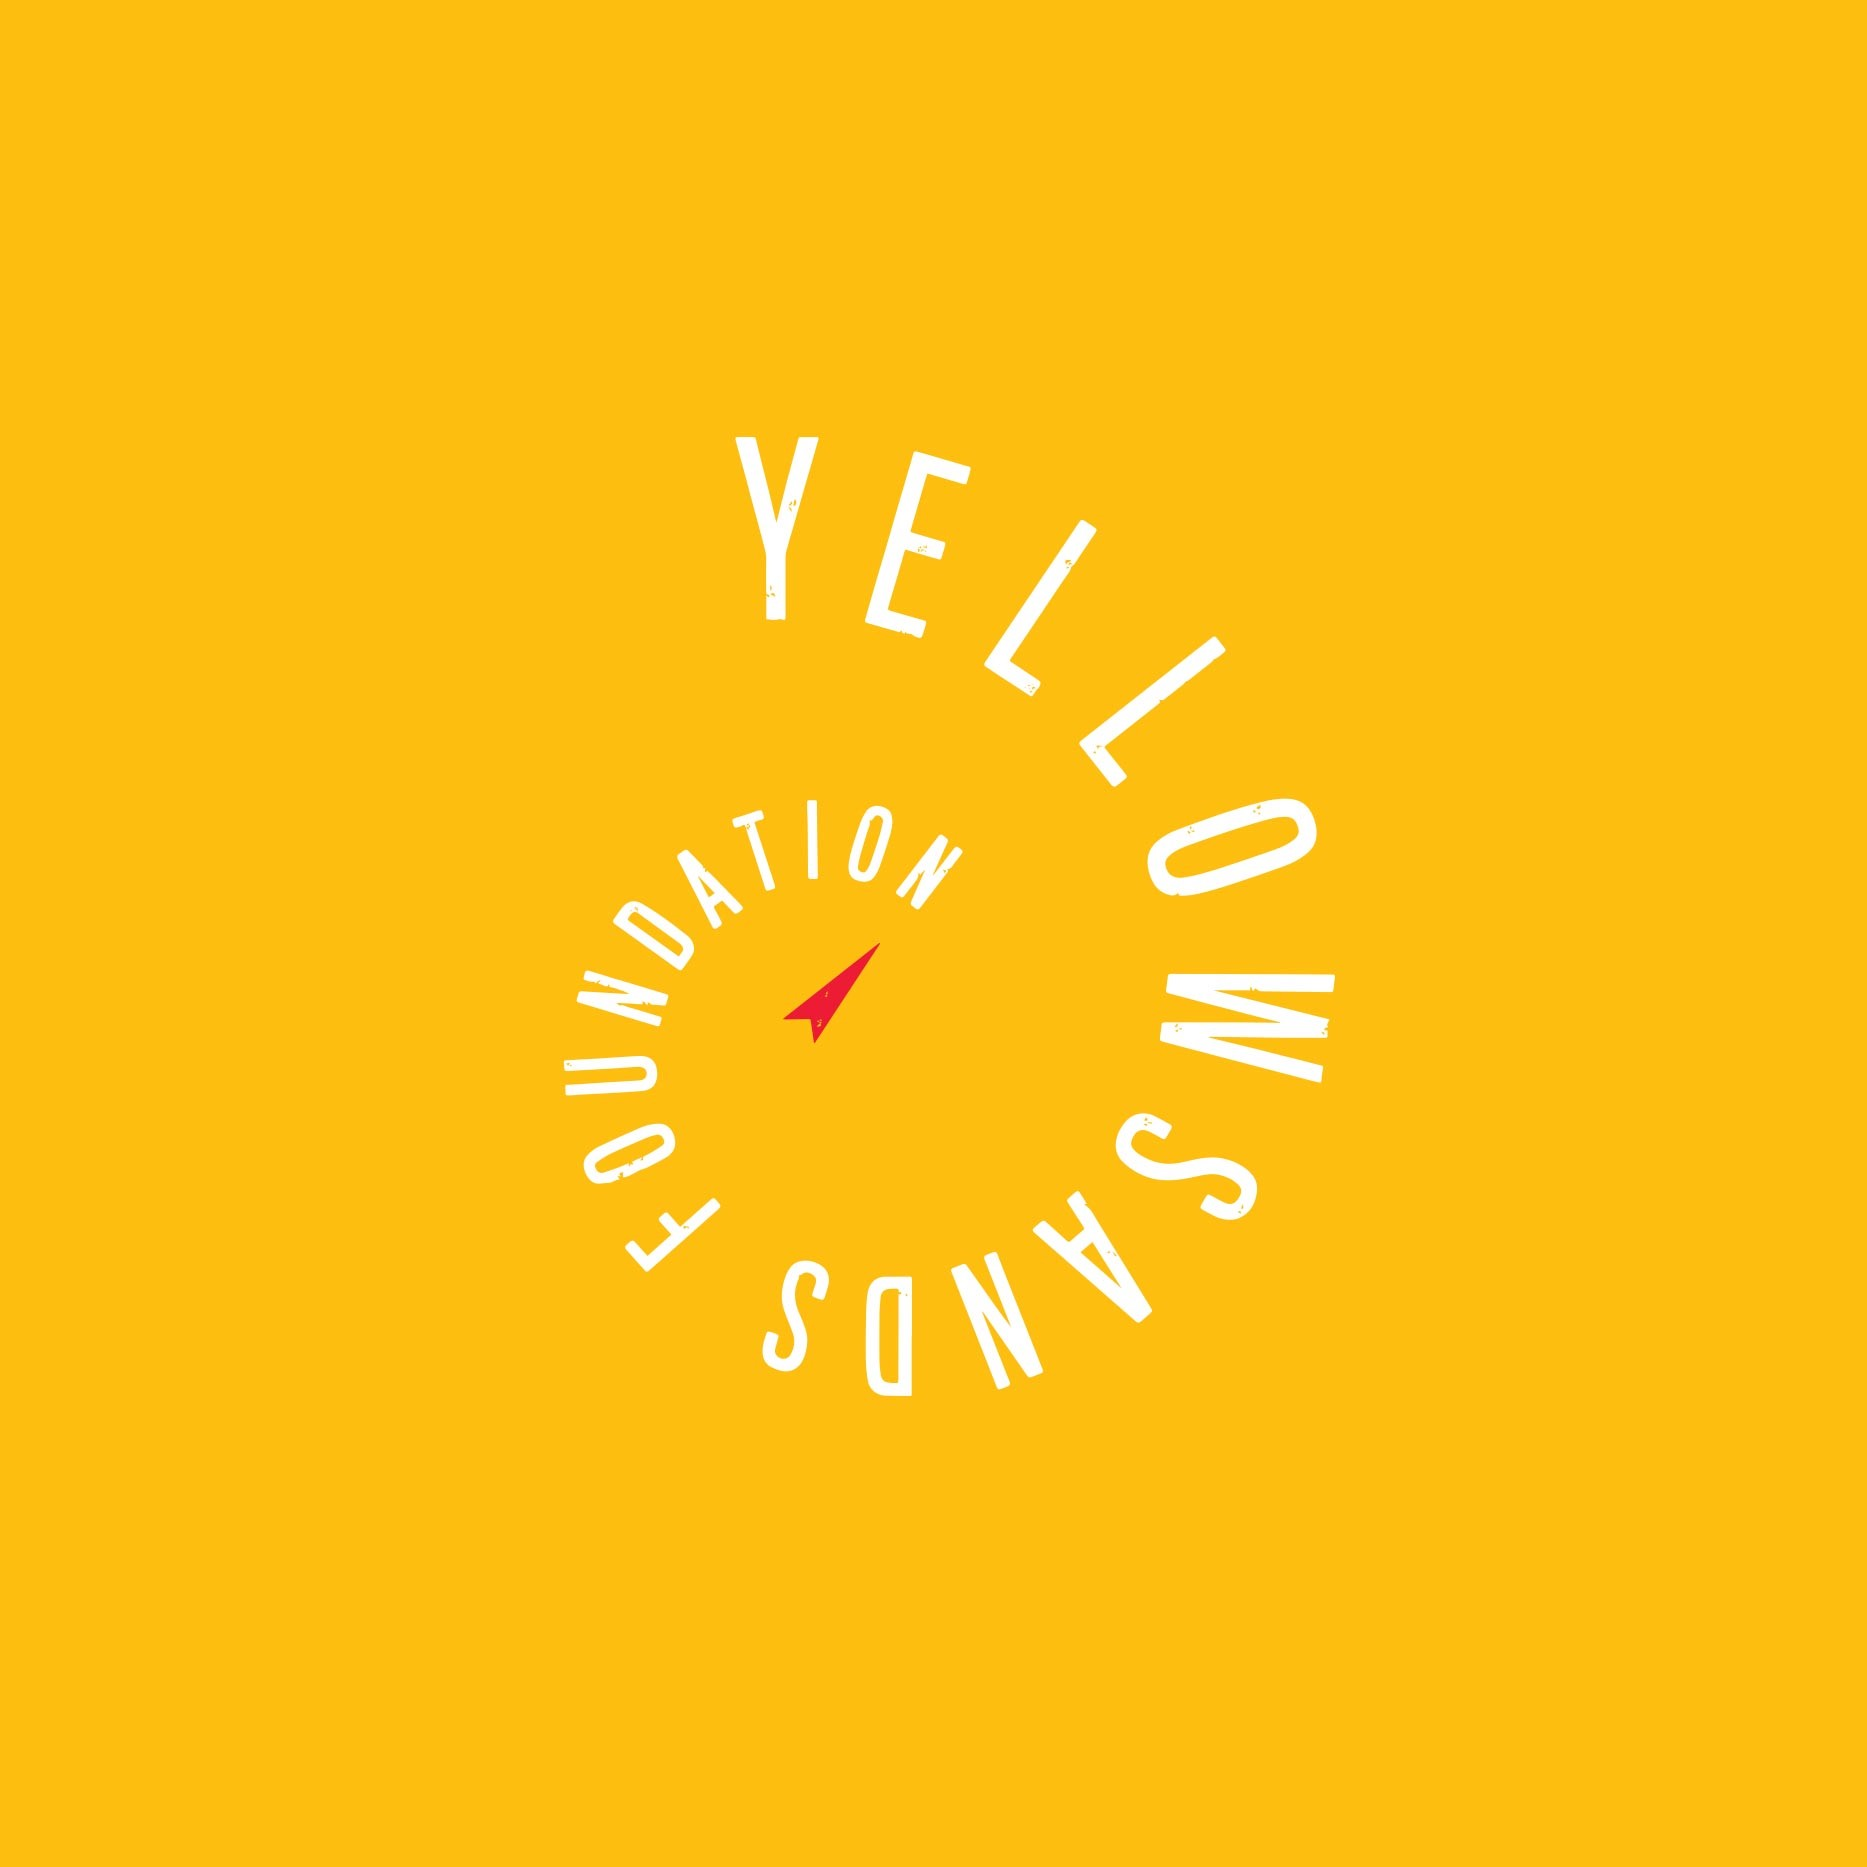 LOGO white and red - solid yellow background.png